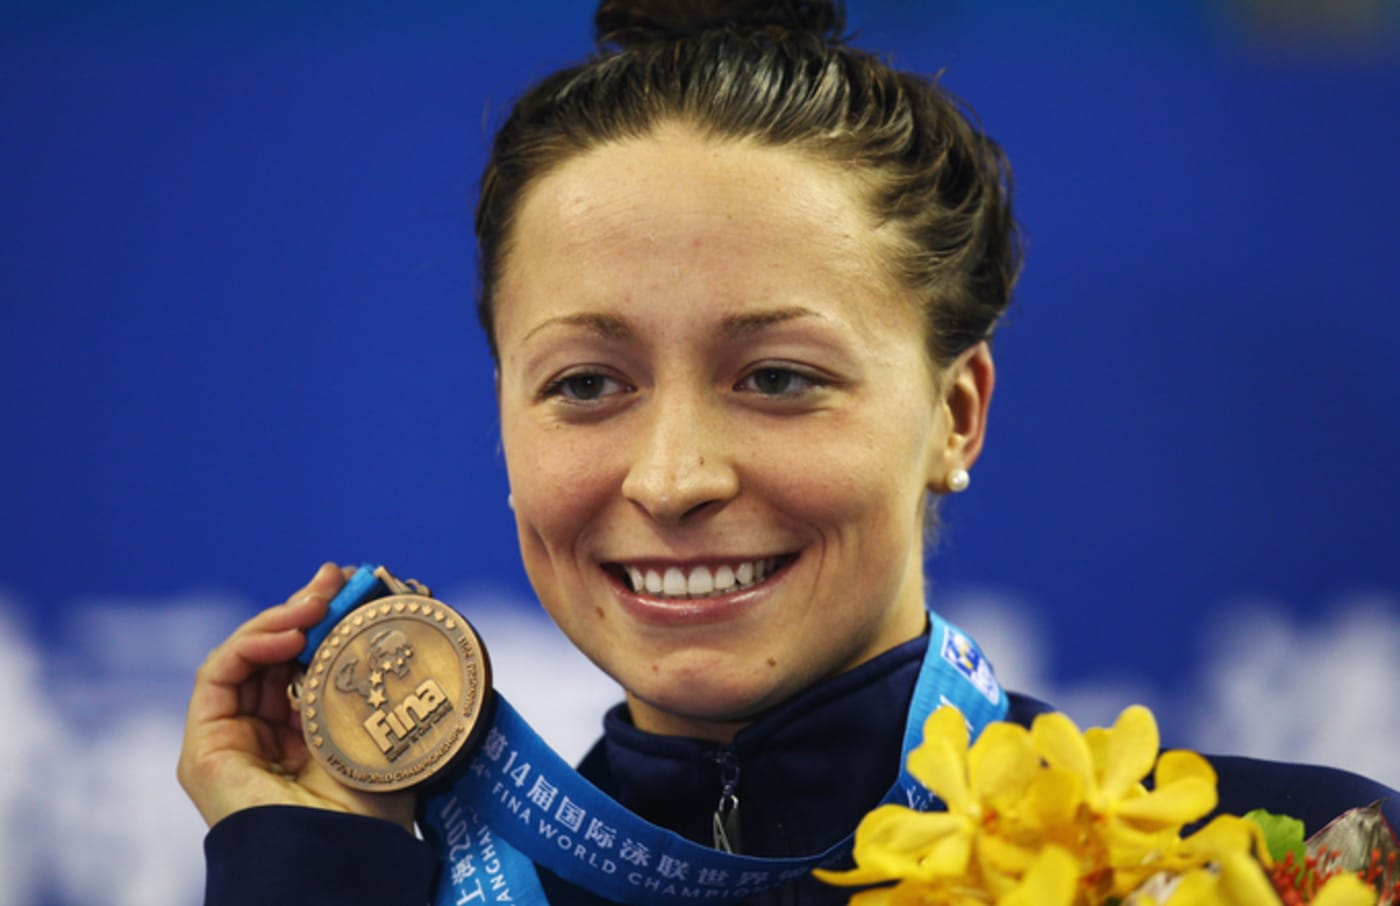 Ariana Kukors wins a bronze medal at the 14th FINA World Championships.